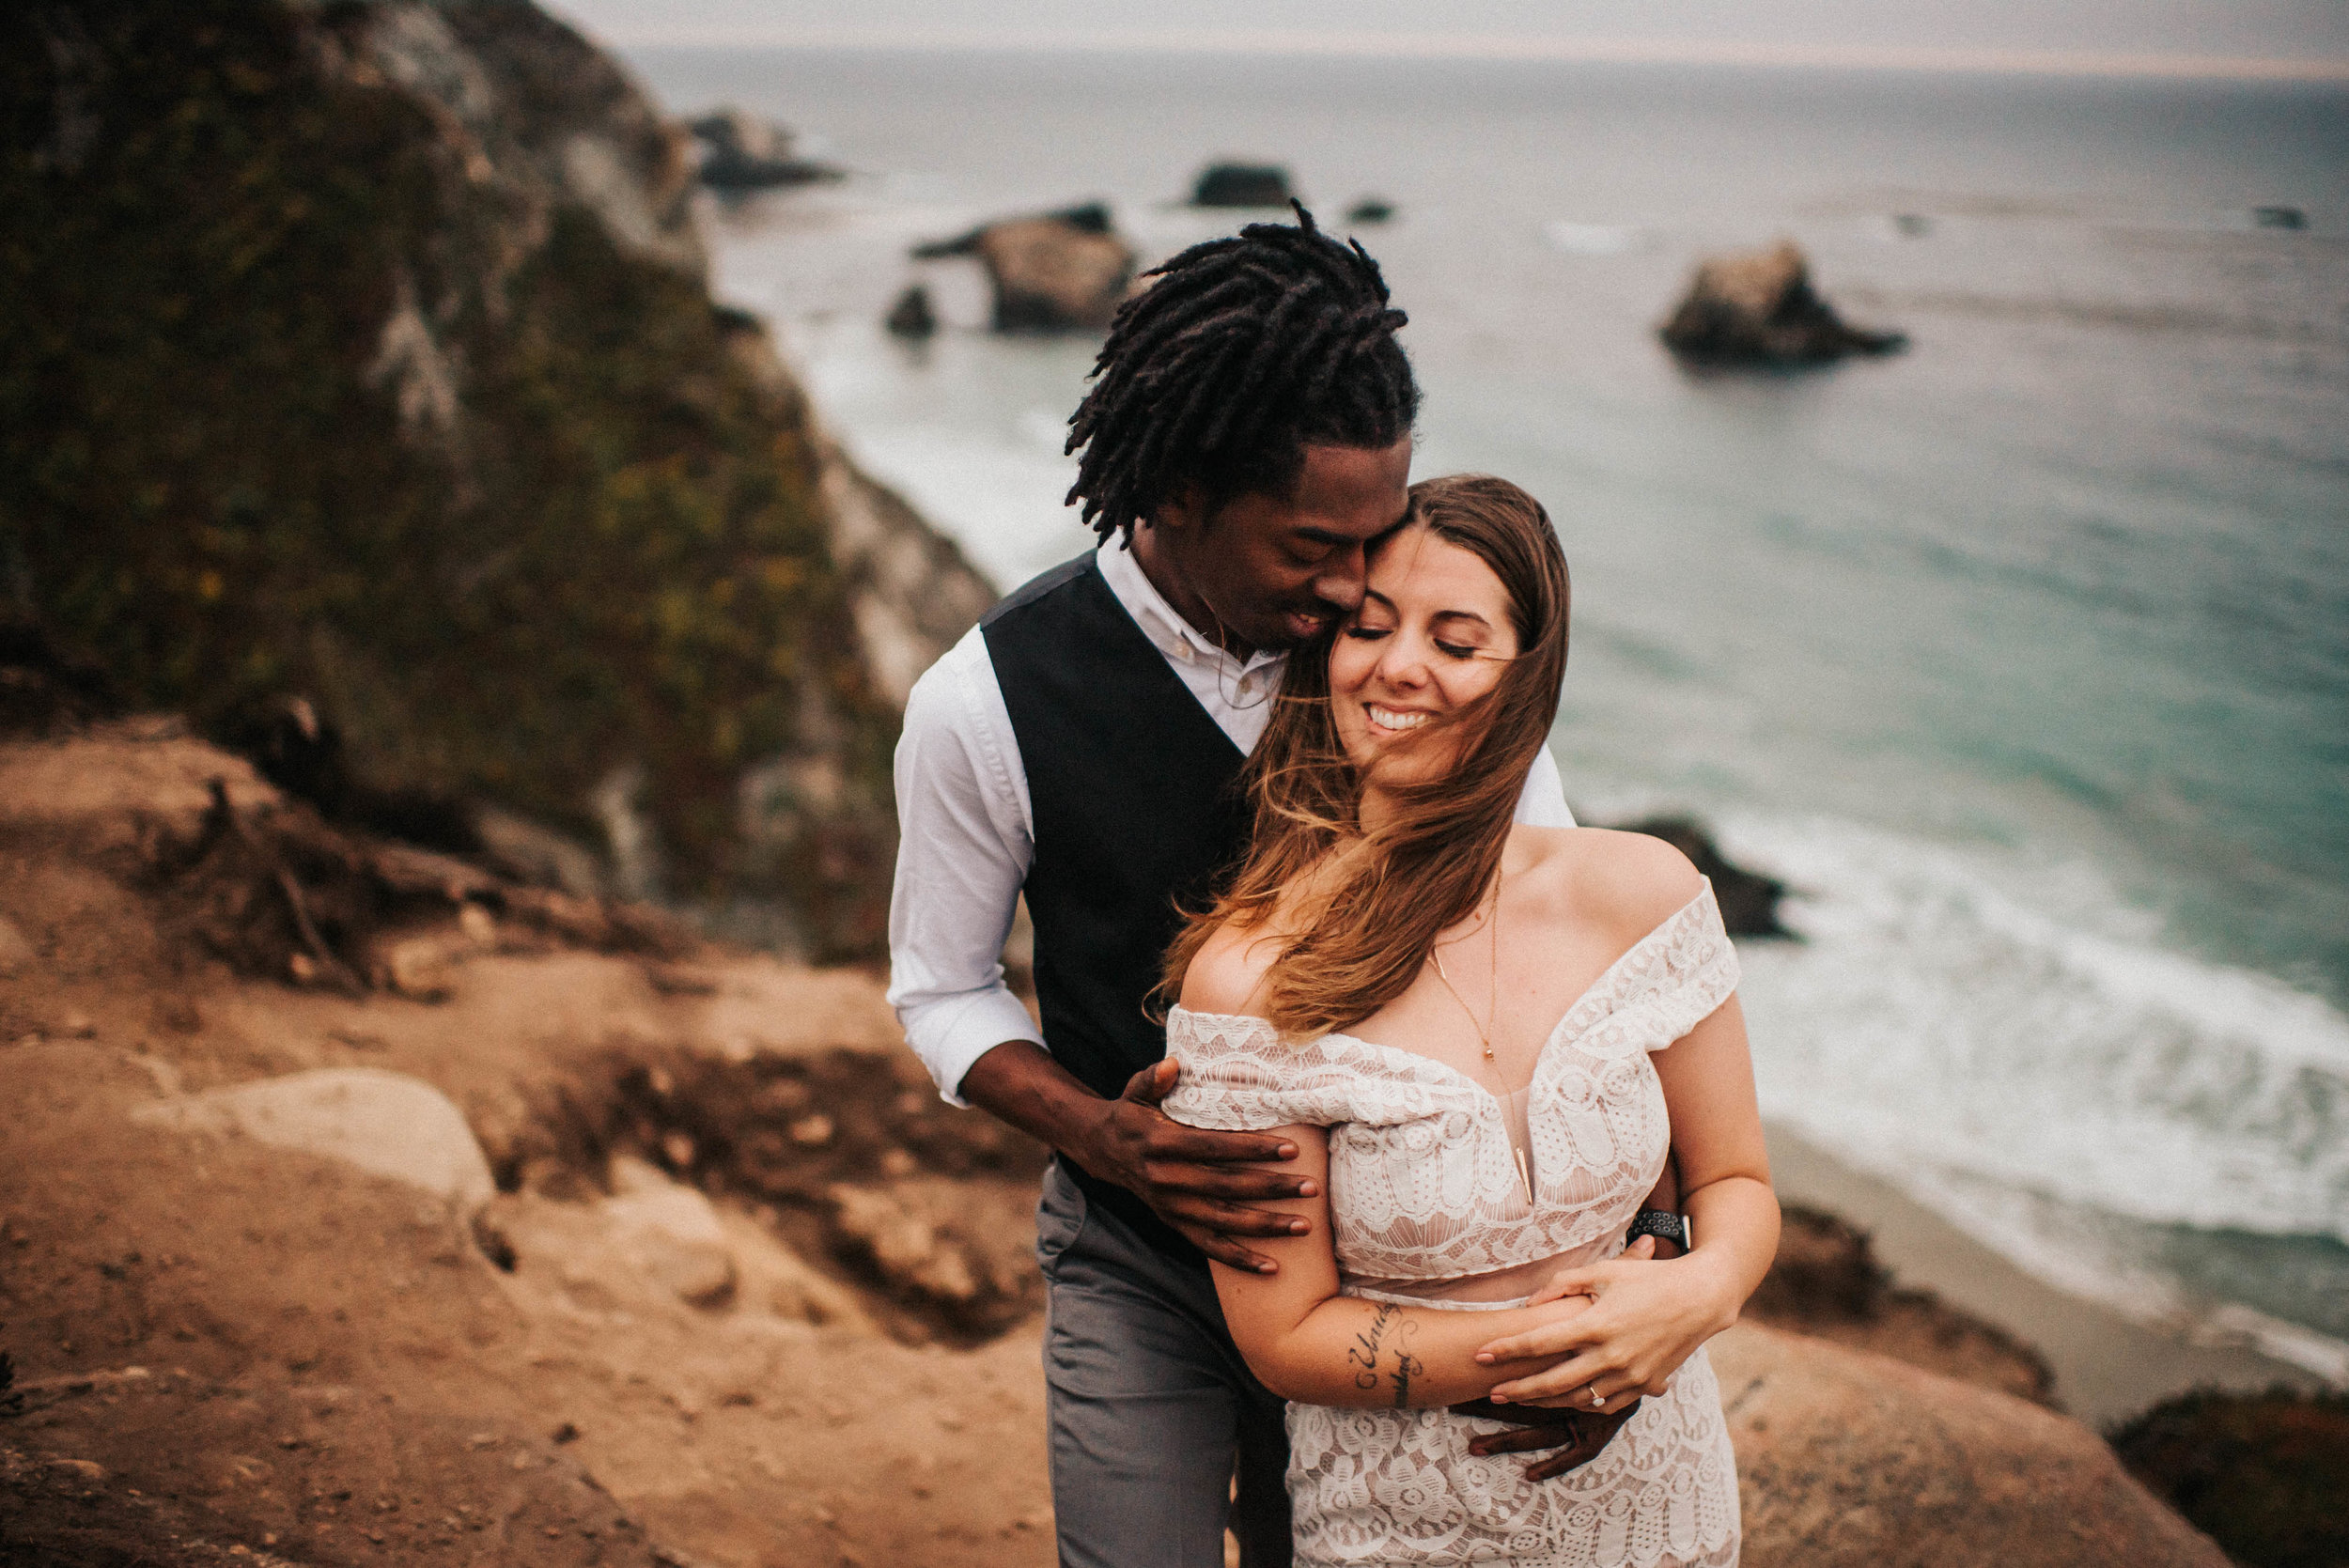 atlanta georgia big sur san francisco california bay area sf oakland wedding portrait adventure engageement nontraditional tattooed couple photographer-284.jpg